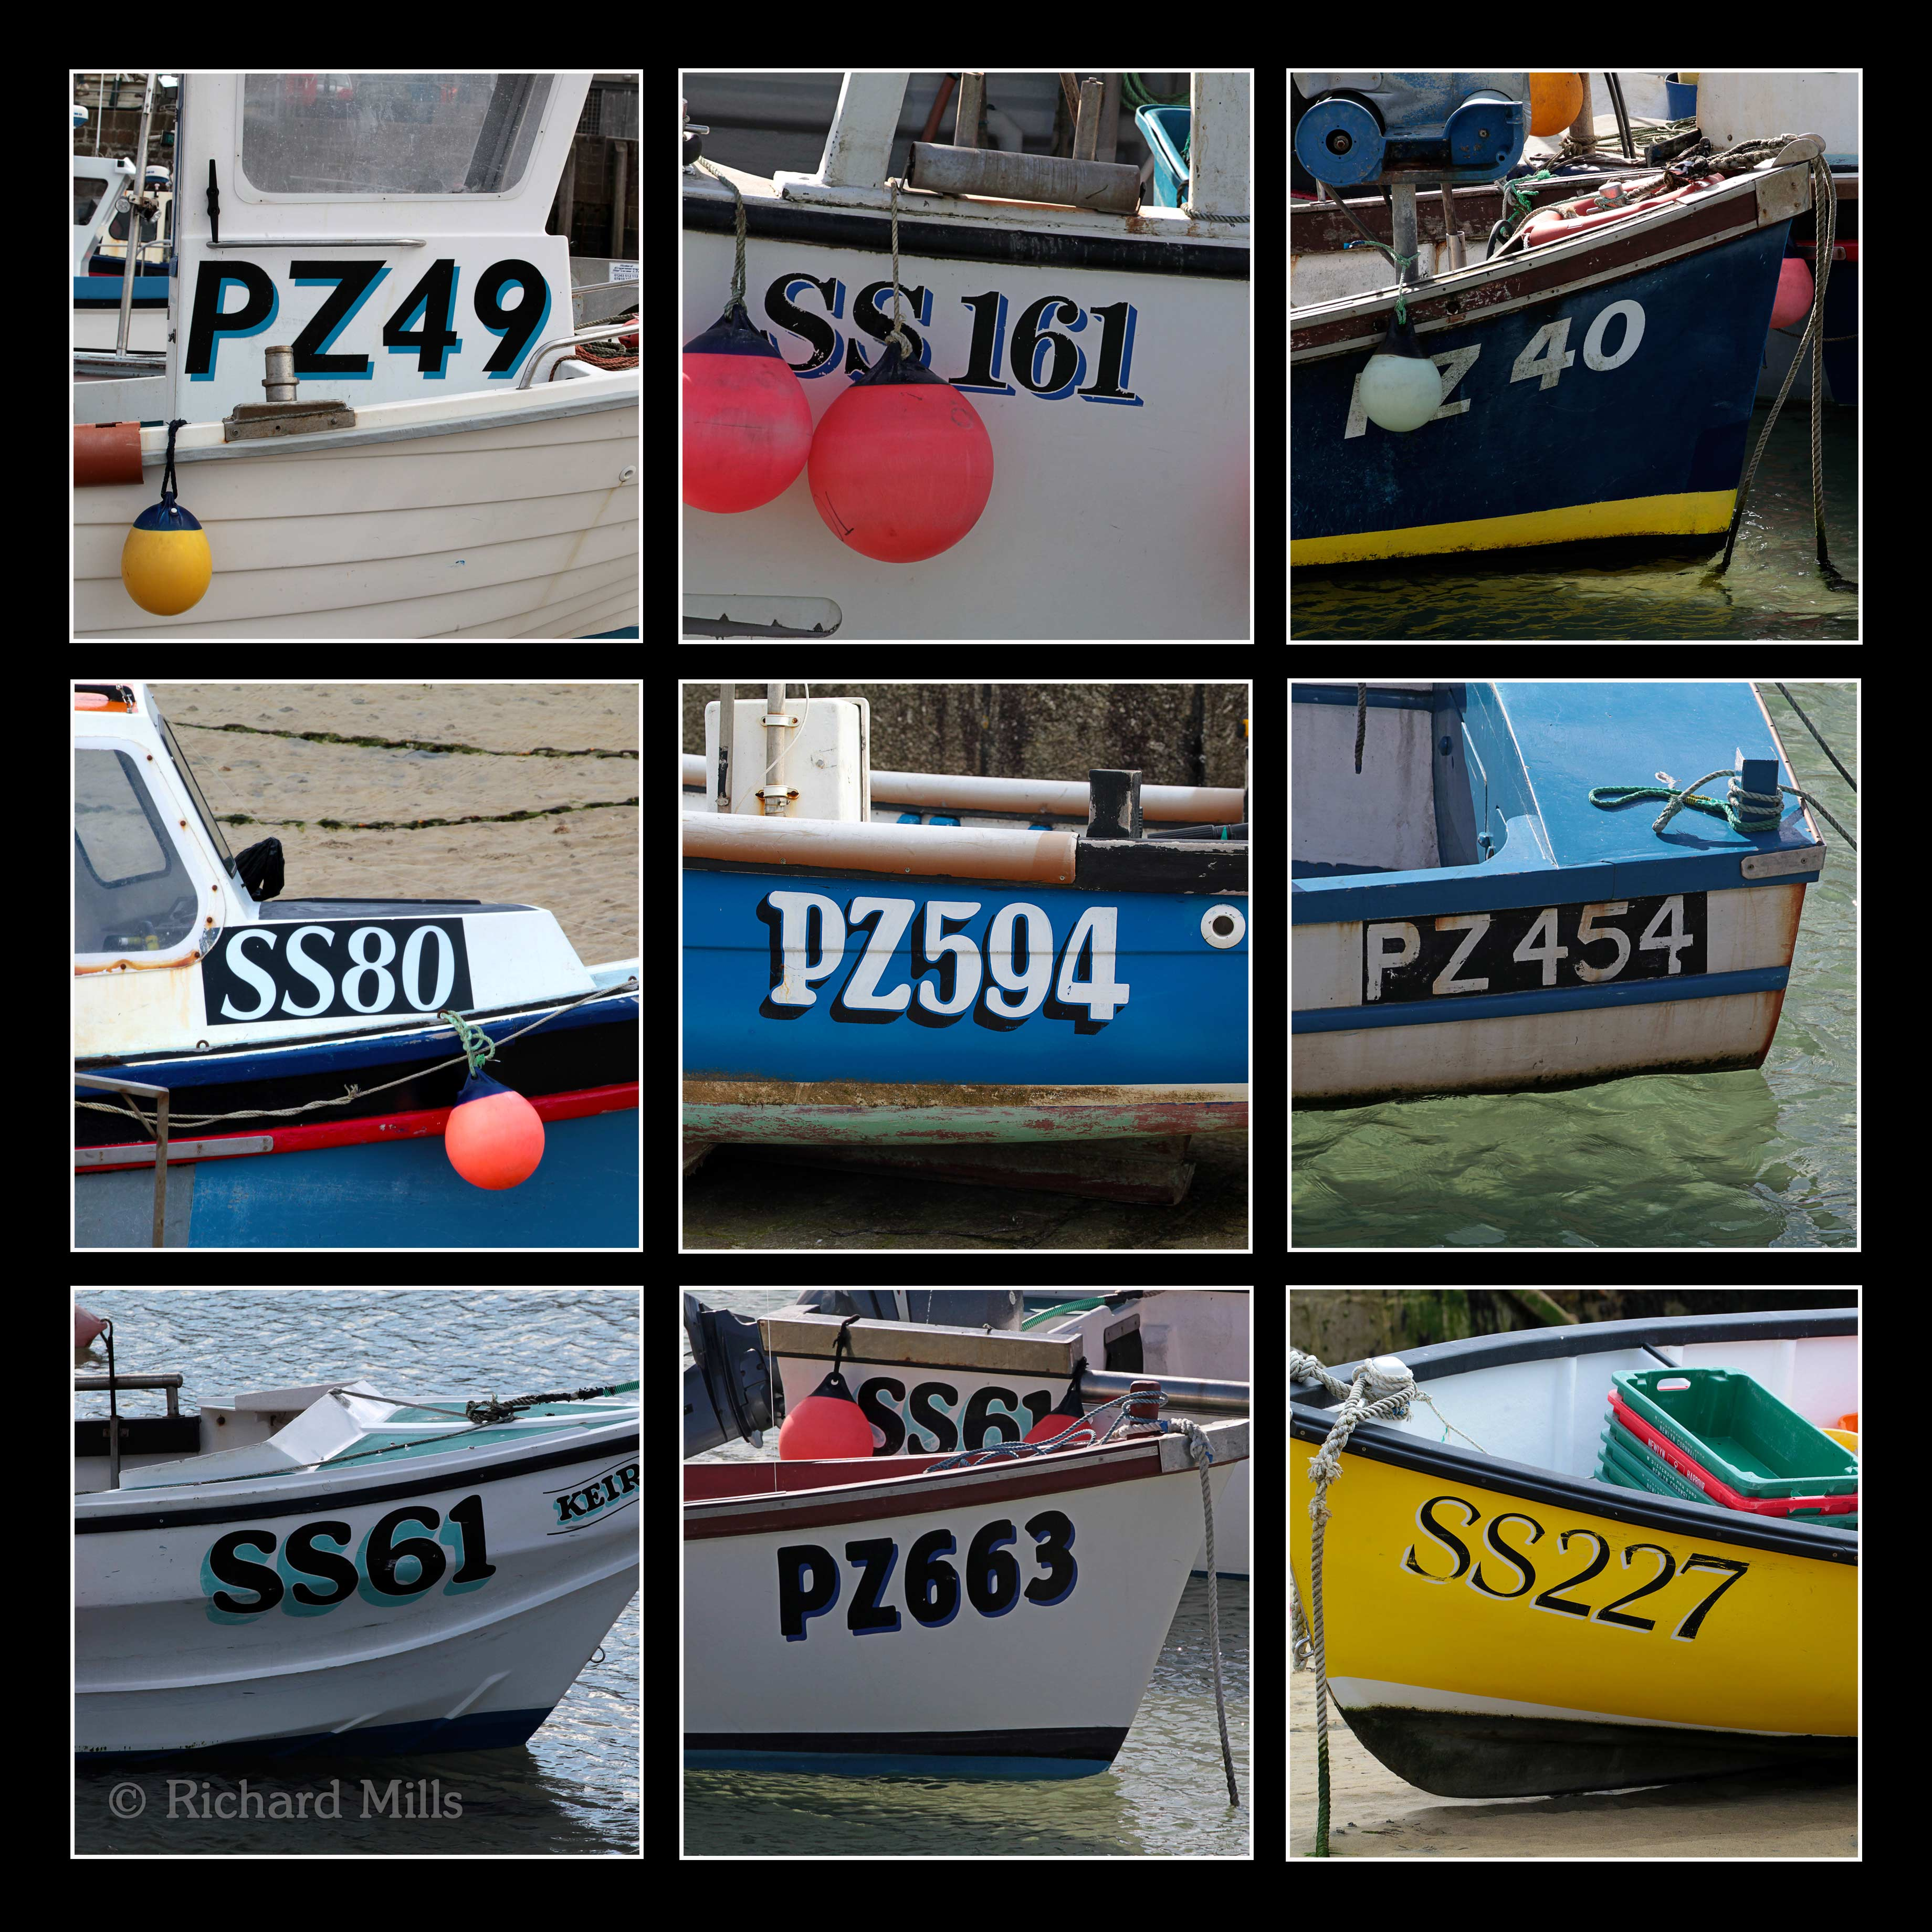 Boat Numbers 2